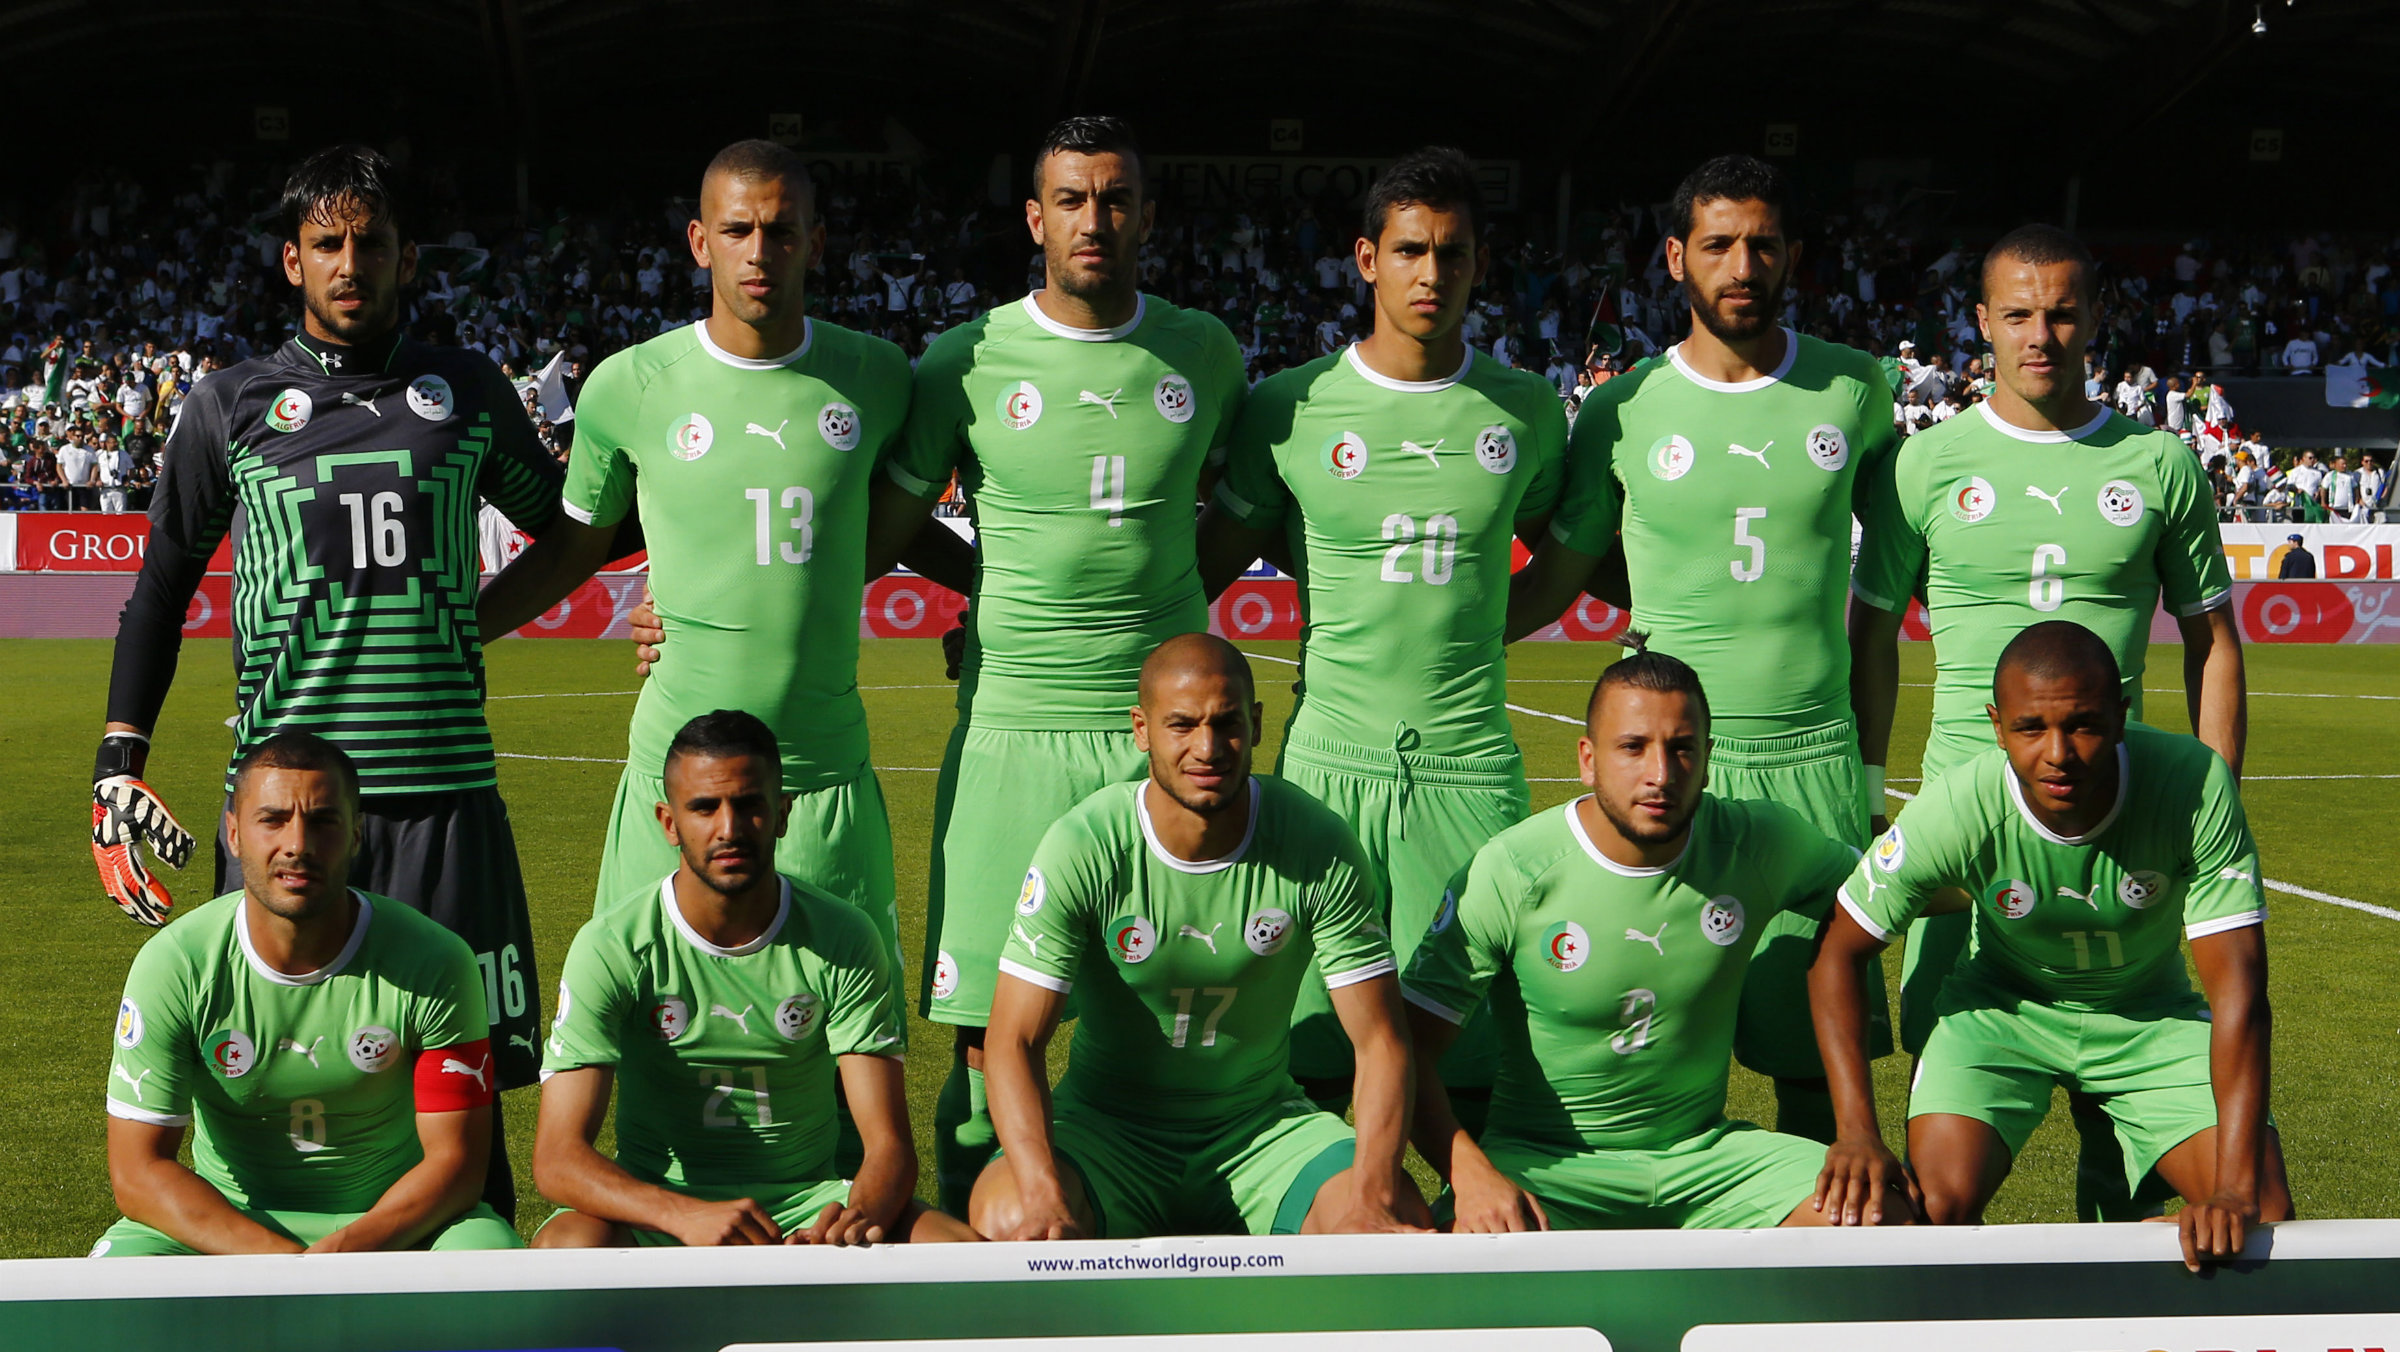 Algeria's World Cup squad lines up for a photo before a match.